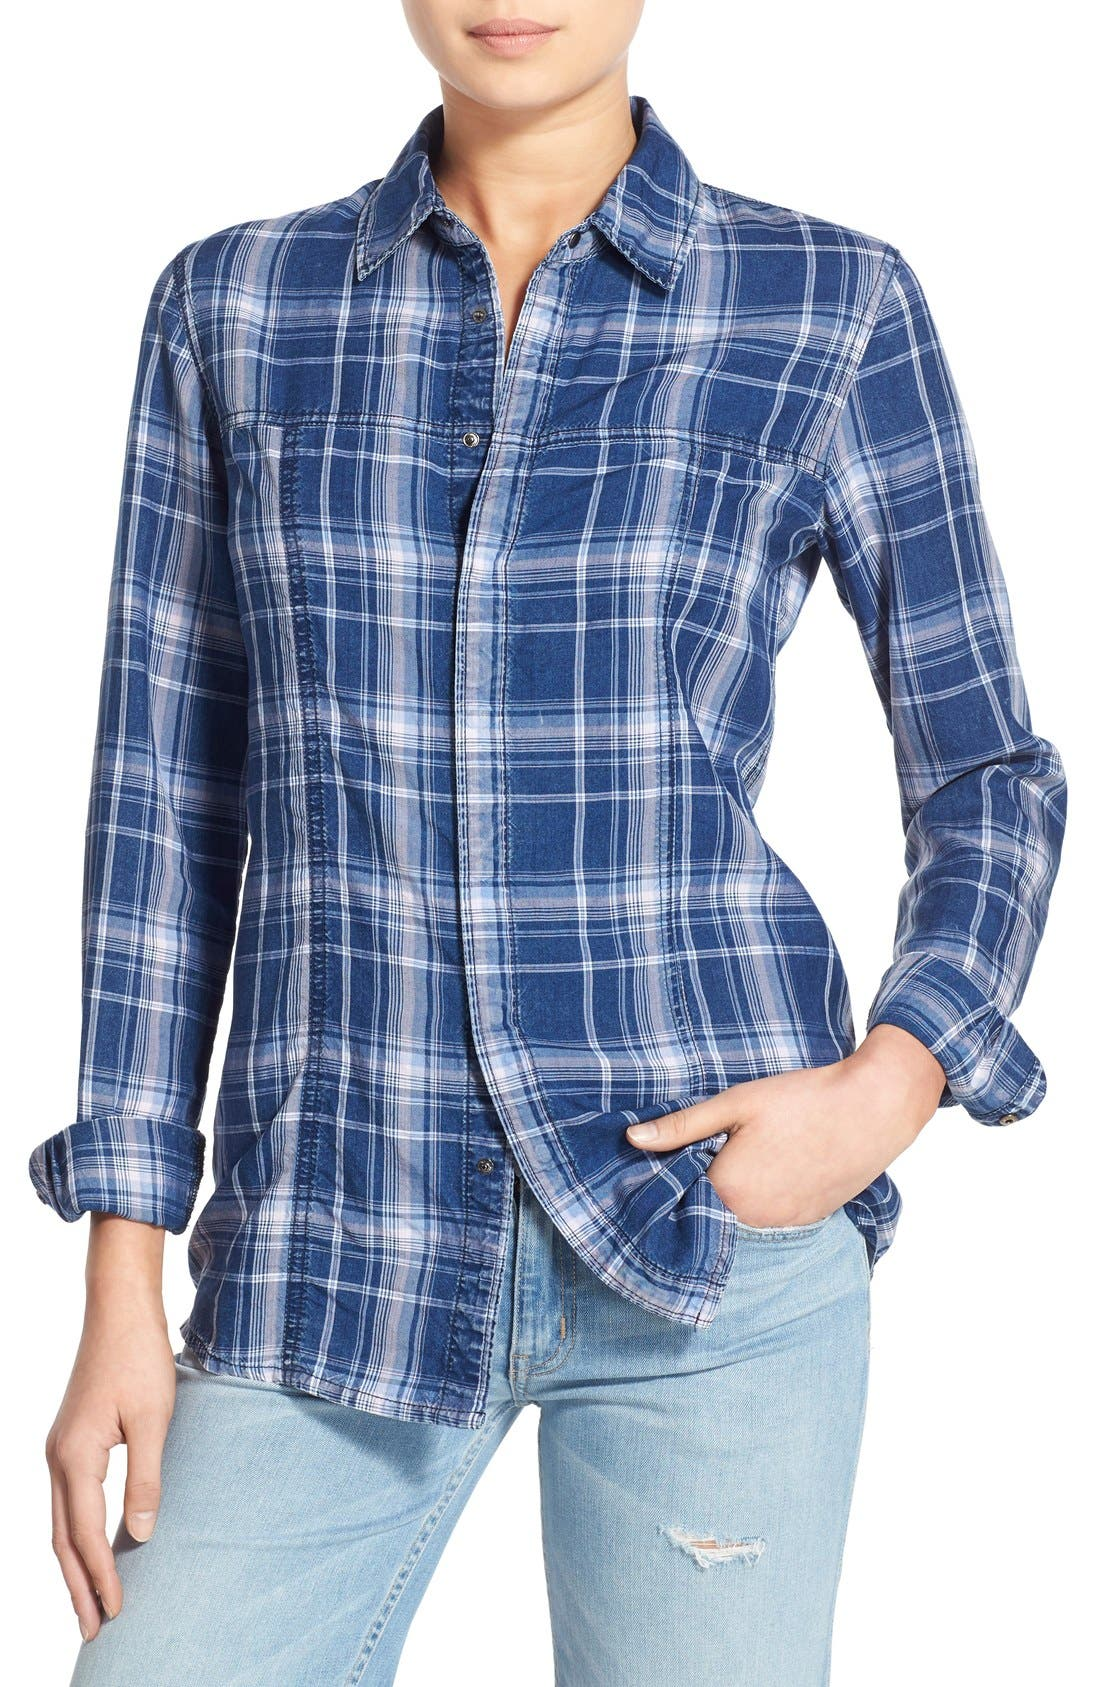 Main Image - Hudson Jeans 'Britt' Plaid Shirt